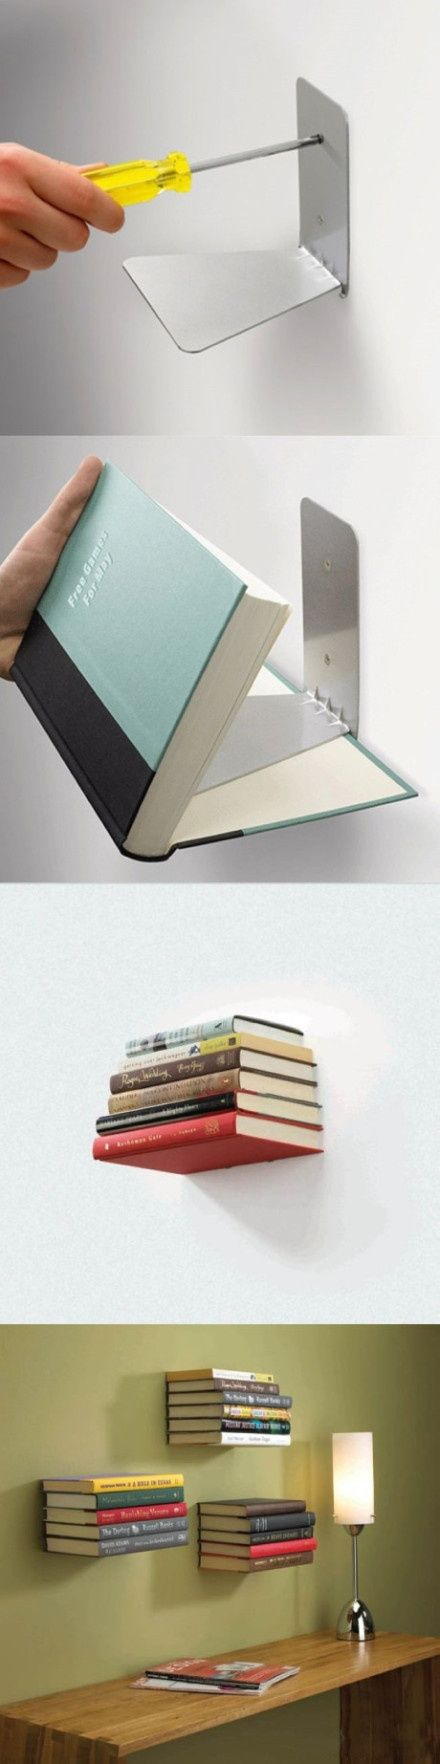 Nancy, I thought of you immediately when I saw this!  I think it looks great and is an awesome idea!  You could even use 1 book as the shelf and then put something else on top, like a knick-knack or something.  I might try it myself!    Invisible book shelves